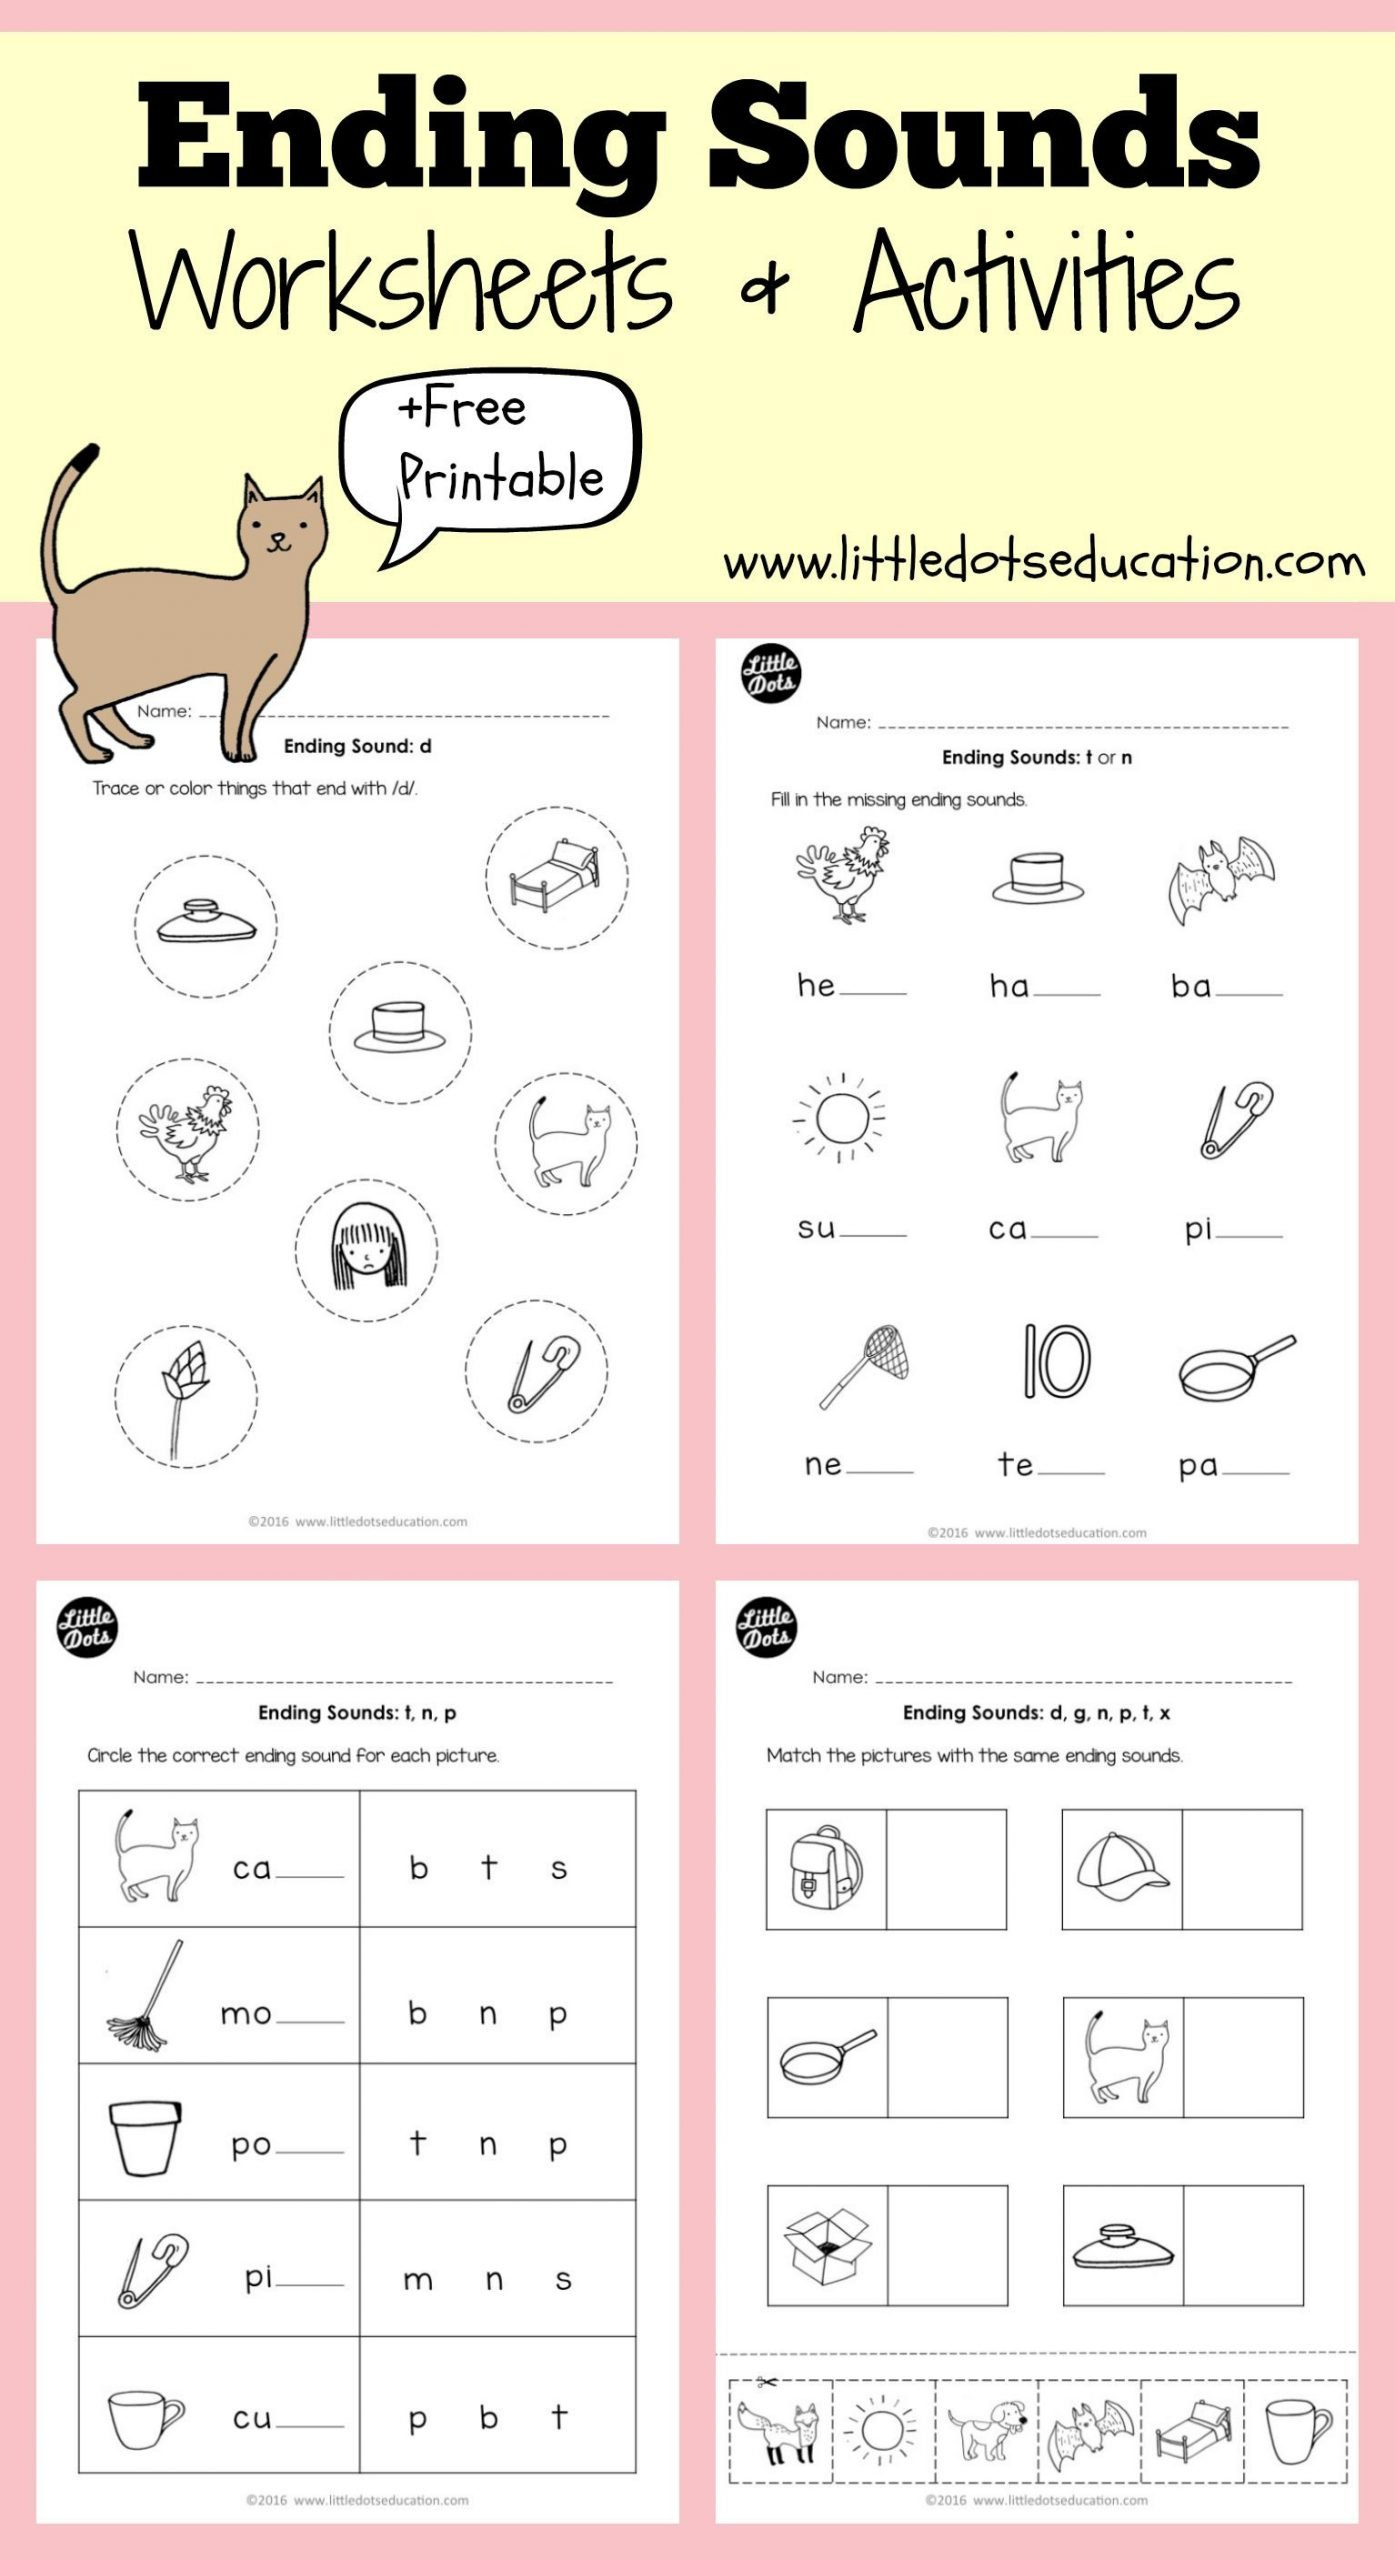 Free Ending sounds Worksheets Ending sounds Worksheets and Activities